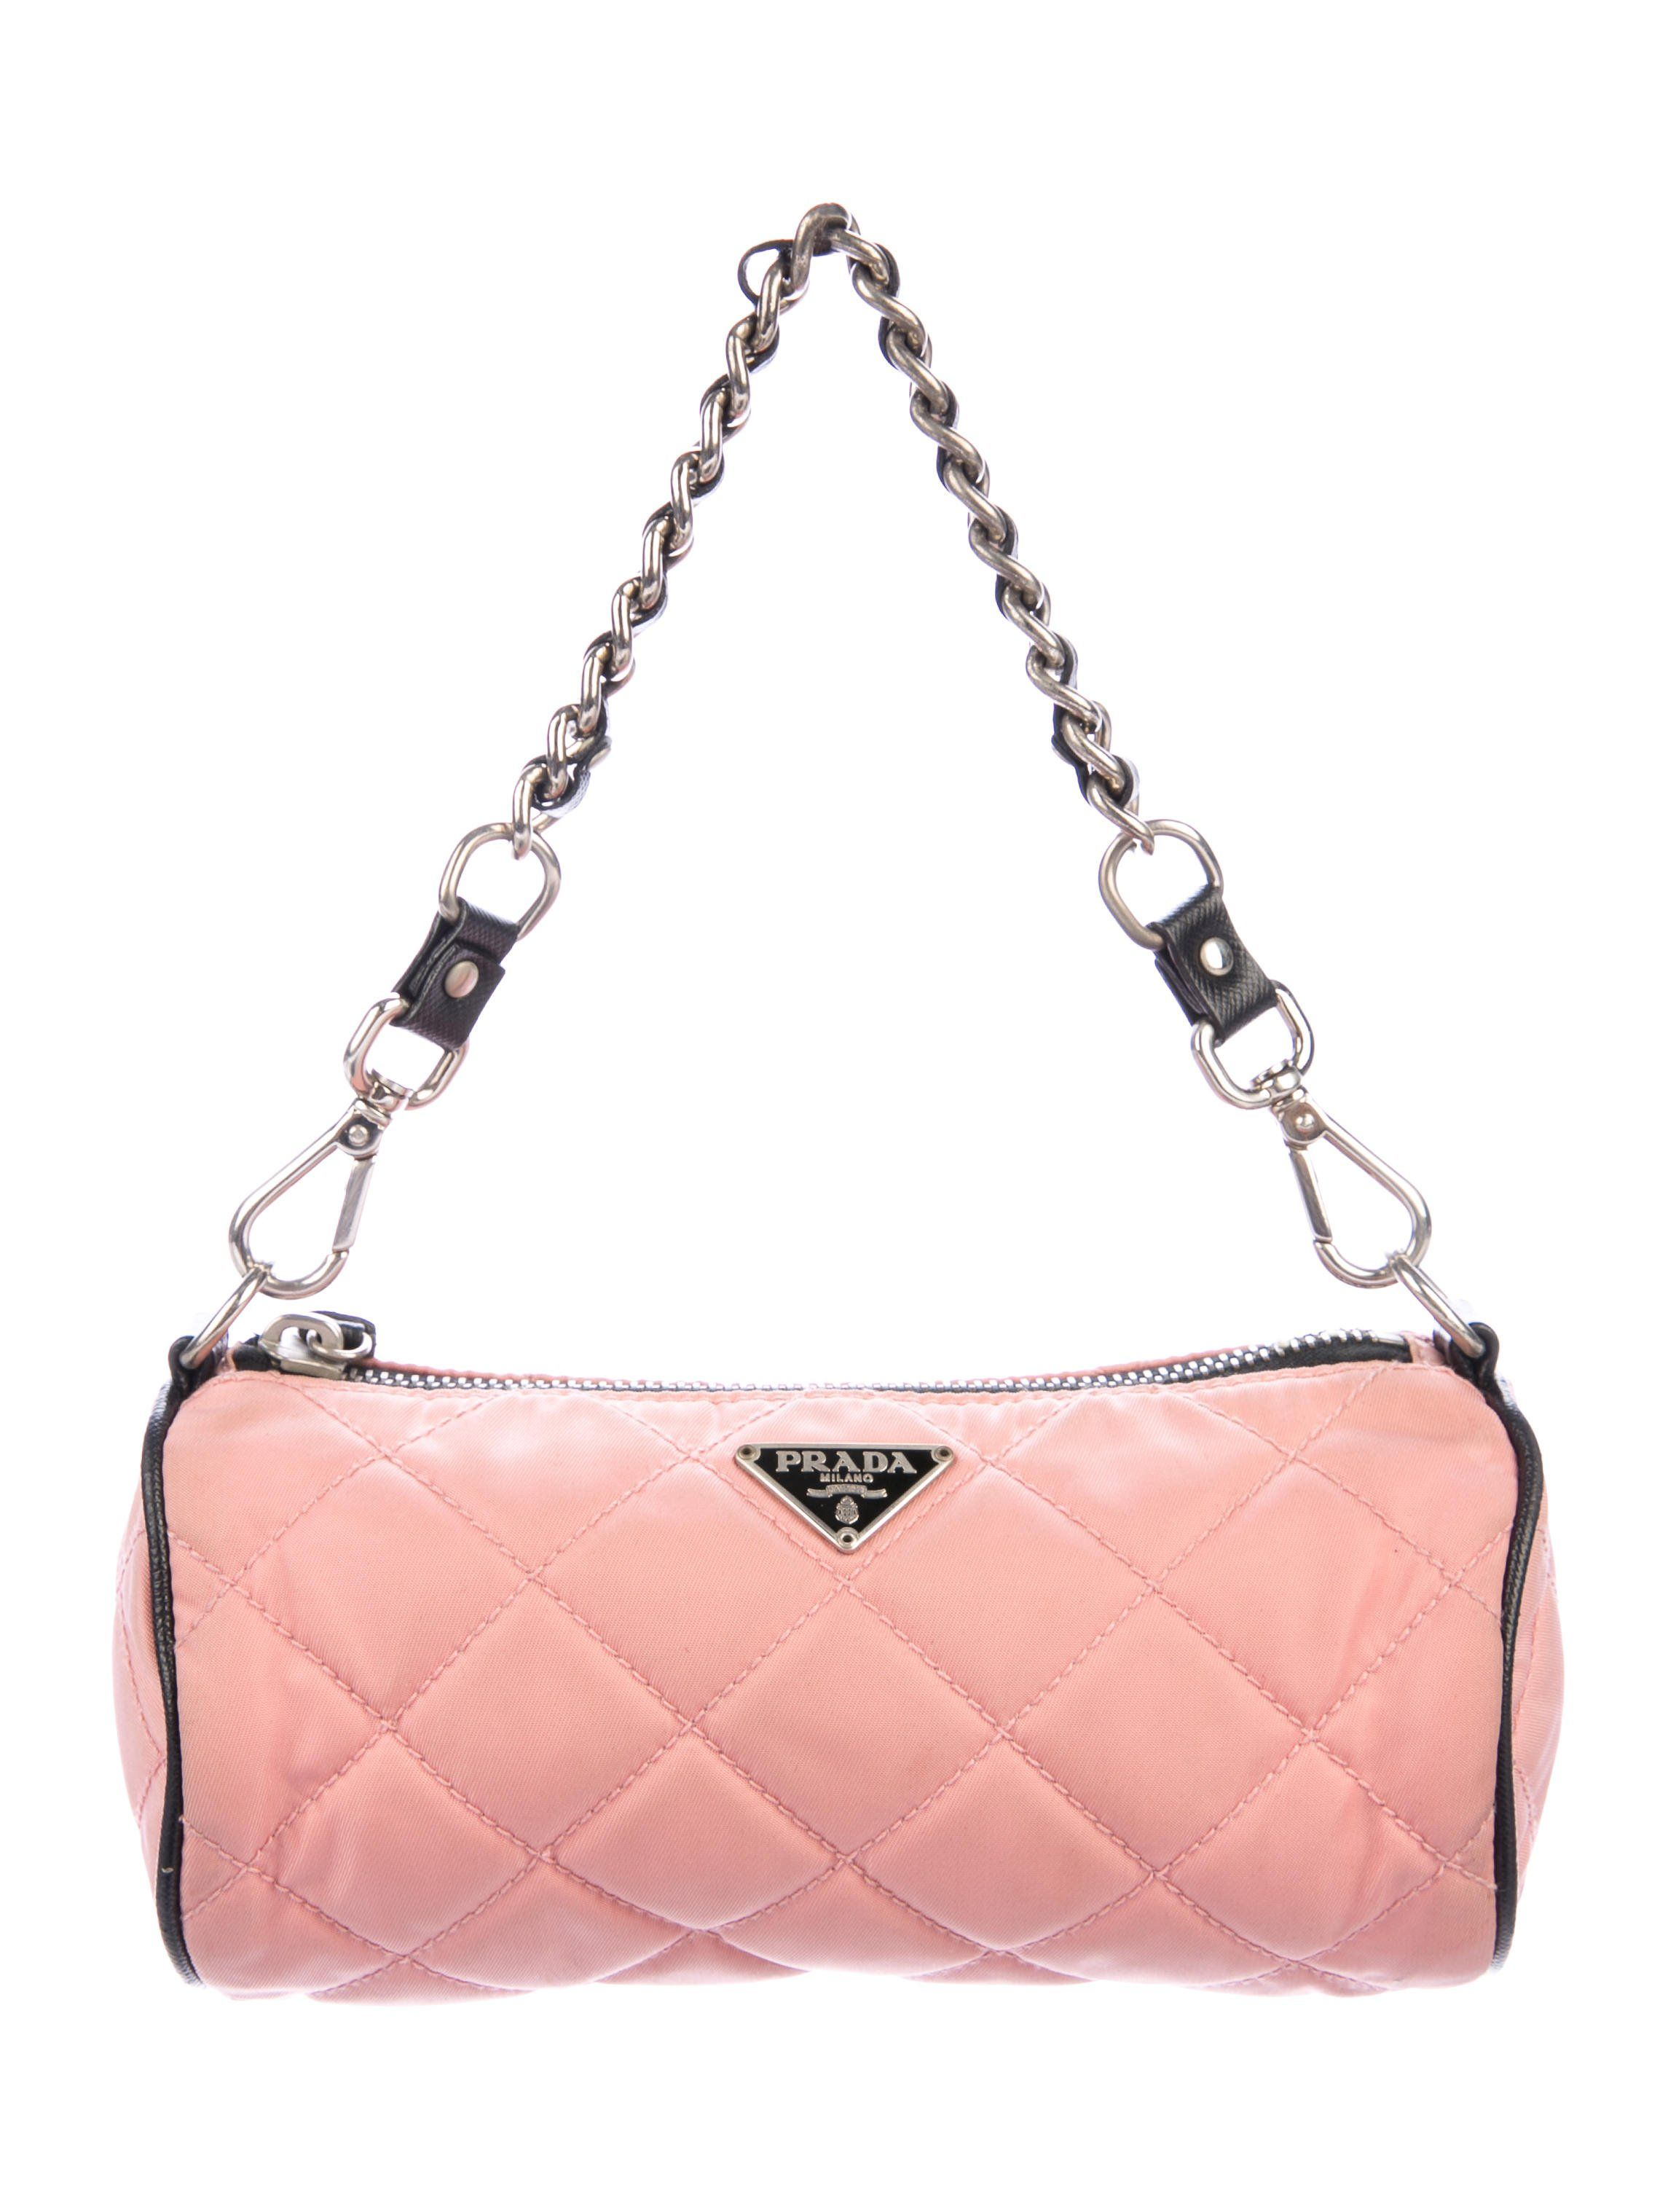 b5c9f6058b72 Pink quilted Tessuto Prada handle bag with silver-tone hardware, black  leather trim, chain-link and leather handle strap, black jacquard lining  and zip clos